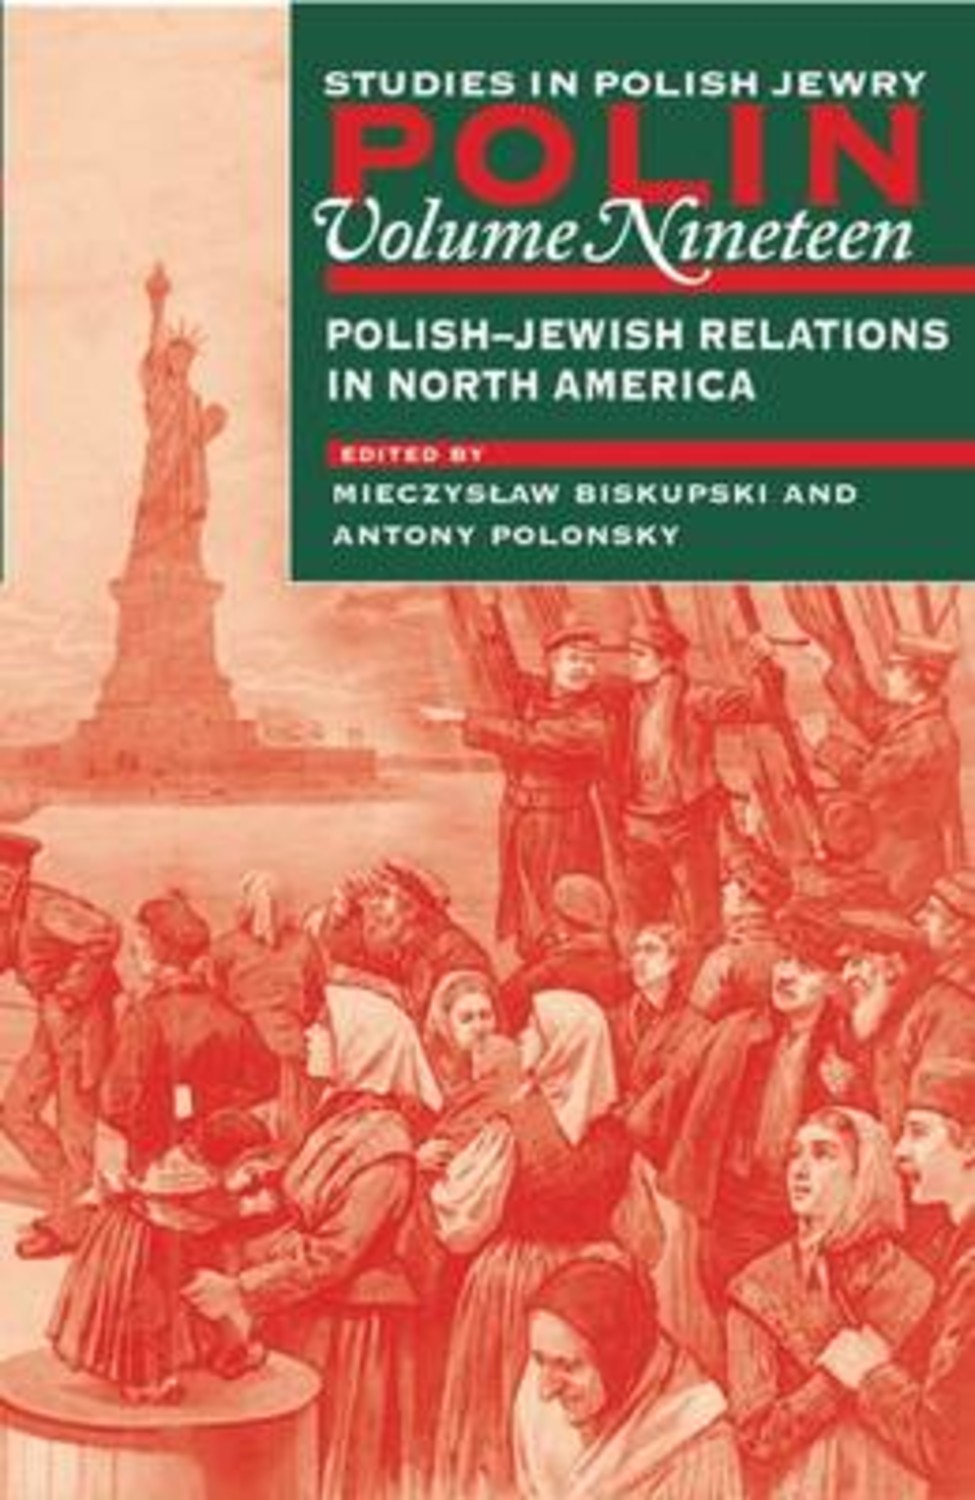 Polin: Studies in Polish Jewry Volume 19